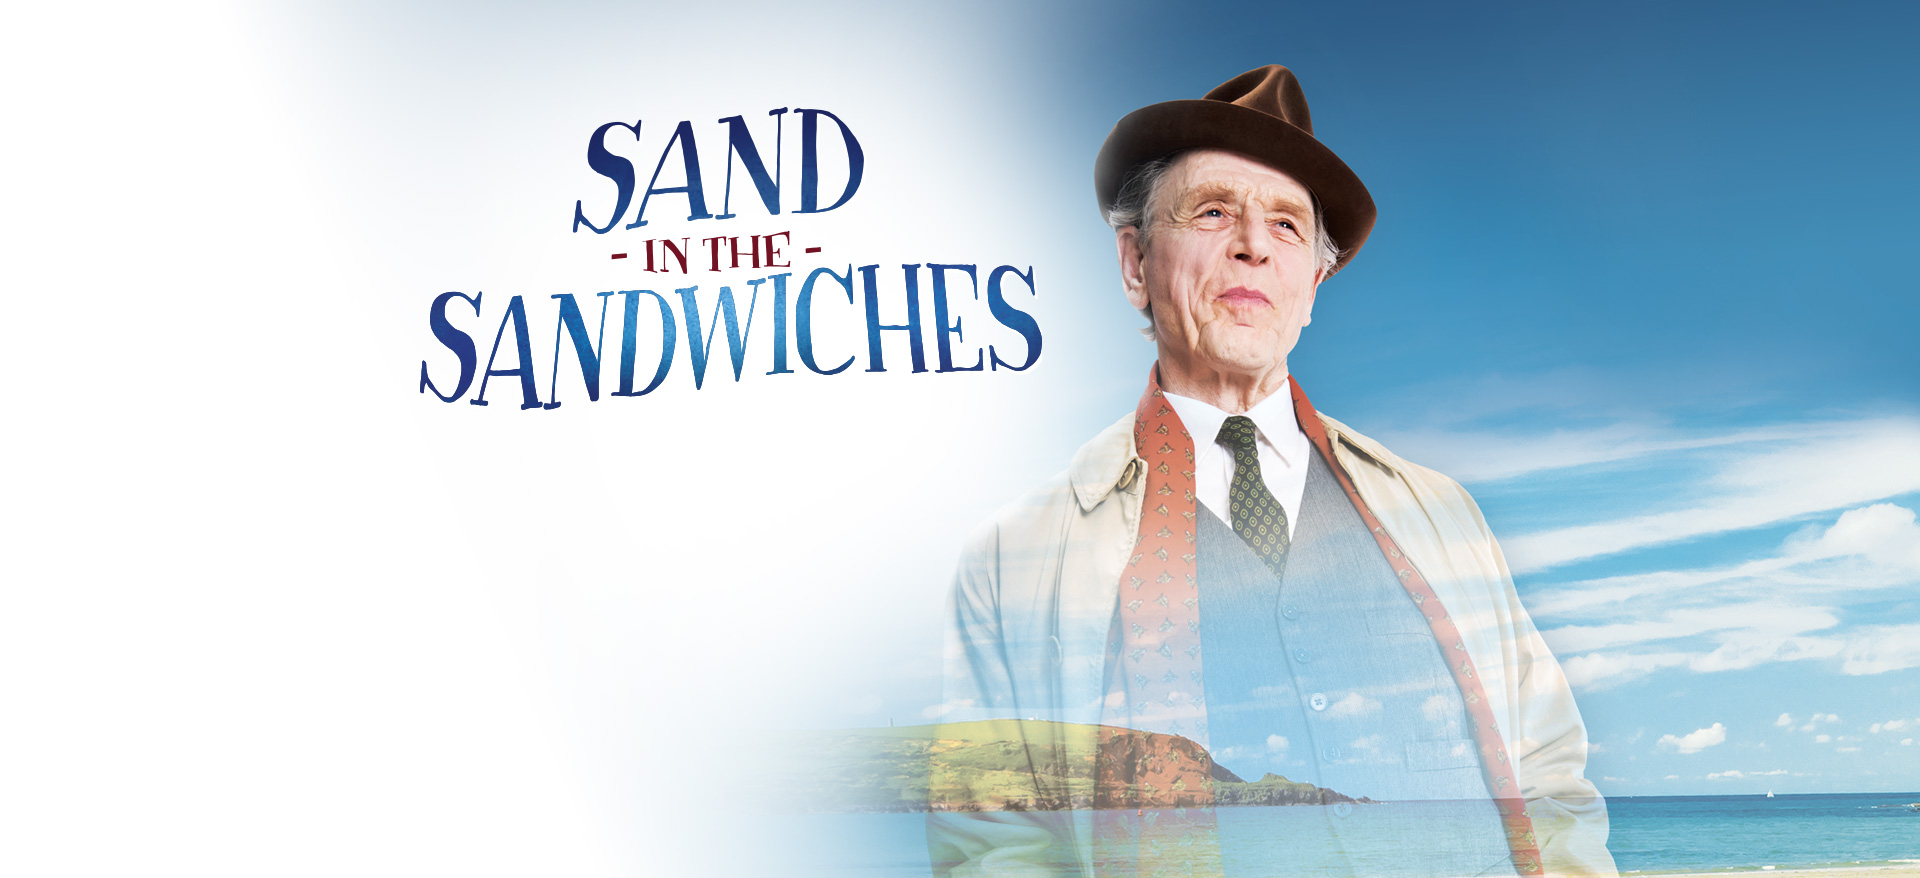 Sand in the Sandwiches